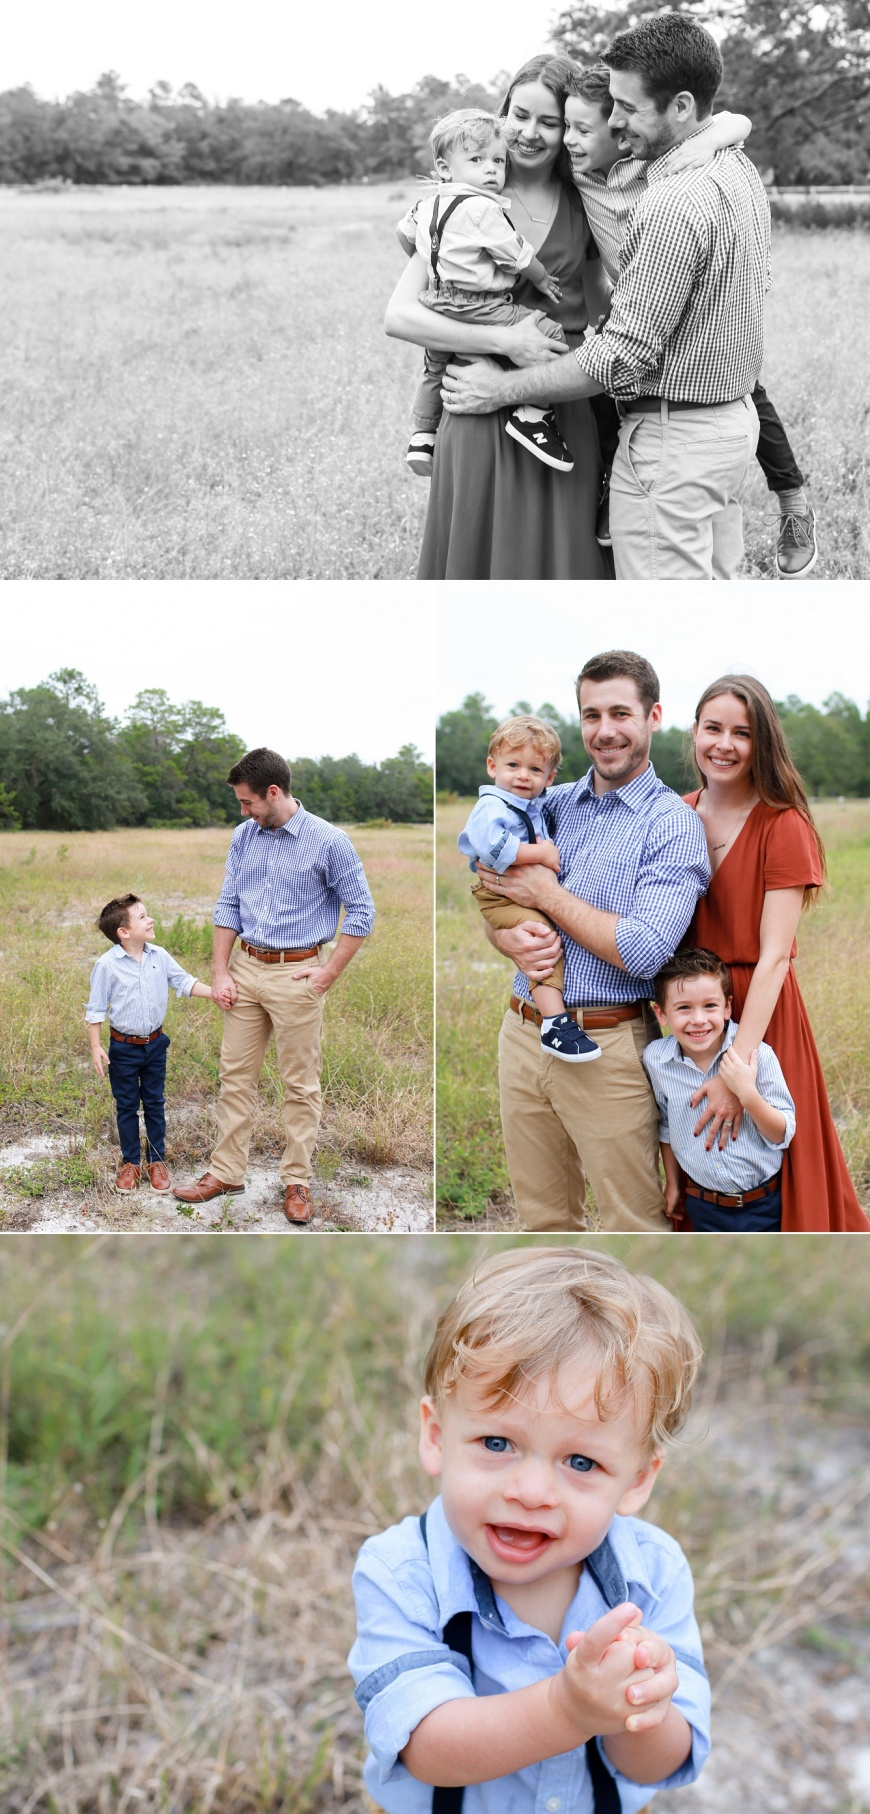 White-Point-Park-Niceville-Florida-Family-Photographer_1001.jpg